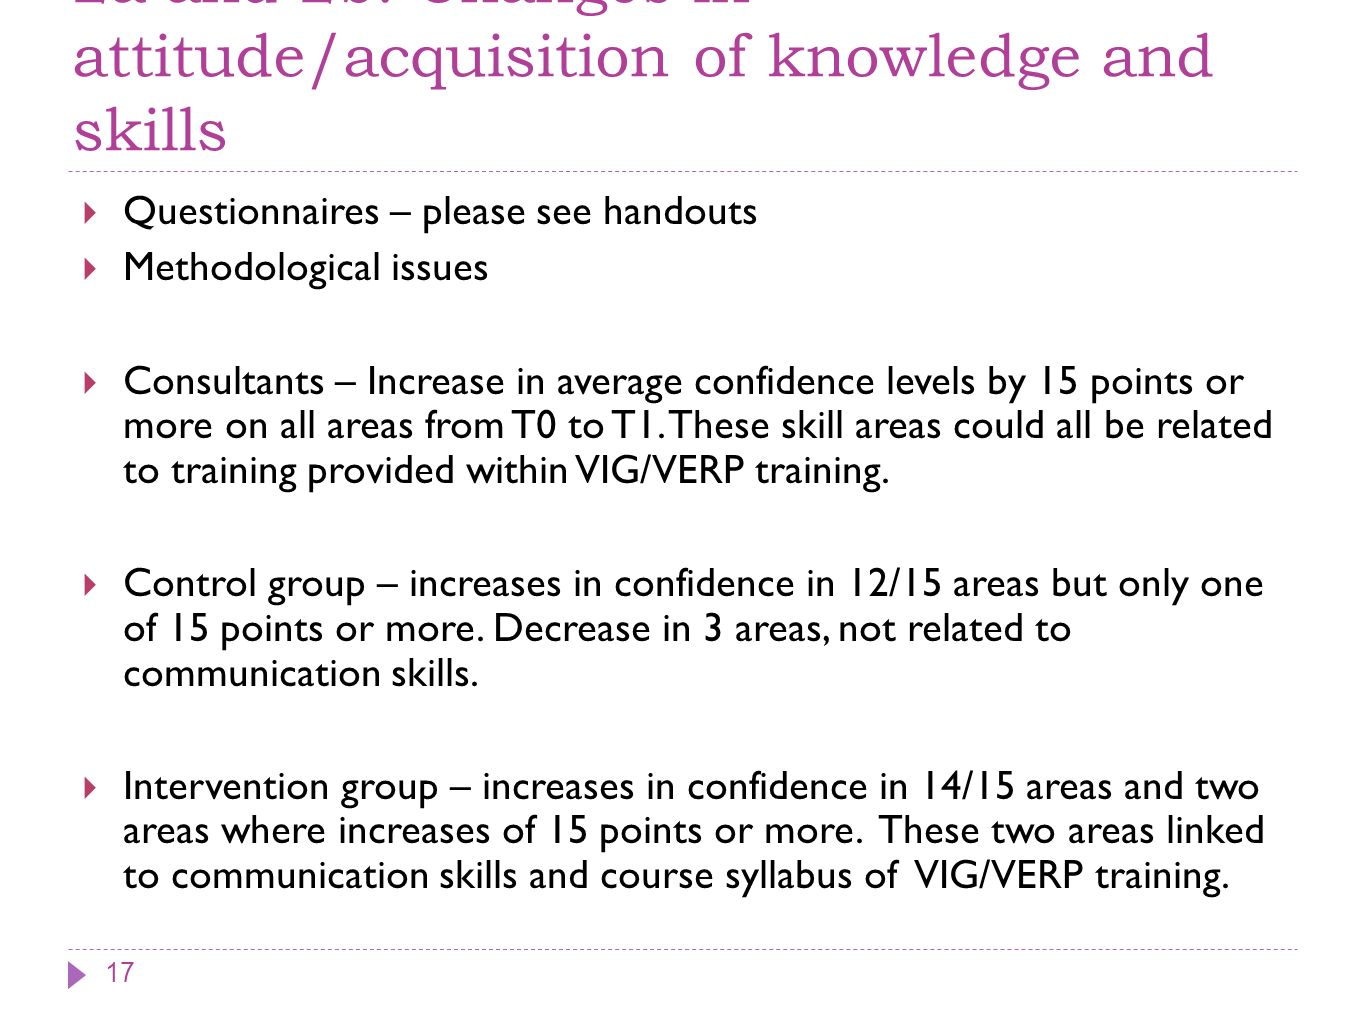 2a and 2b: Changes in attitude/acquisition of knowledge and skills Questionnaires – please see handouts Methodological issues Consultants – Increase in average confidence levels by 15 points or more on all areas from T0 to T1.